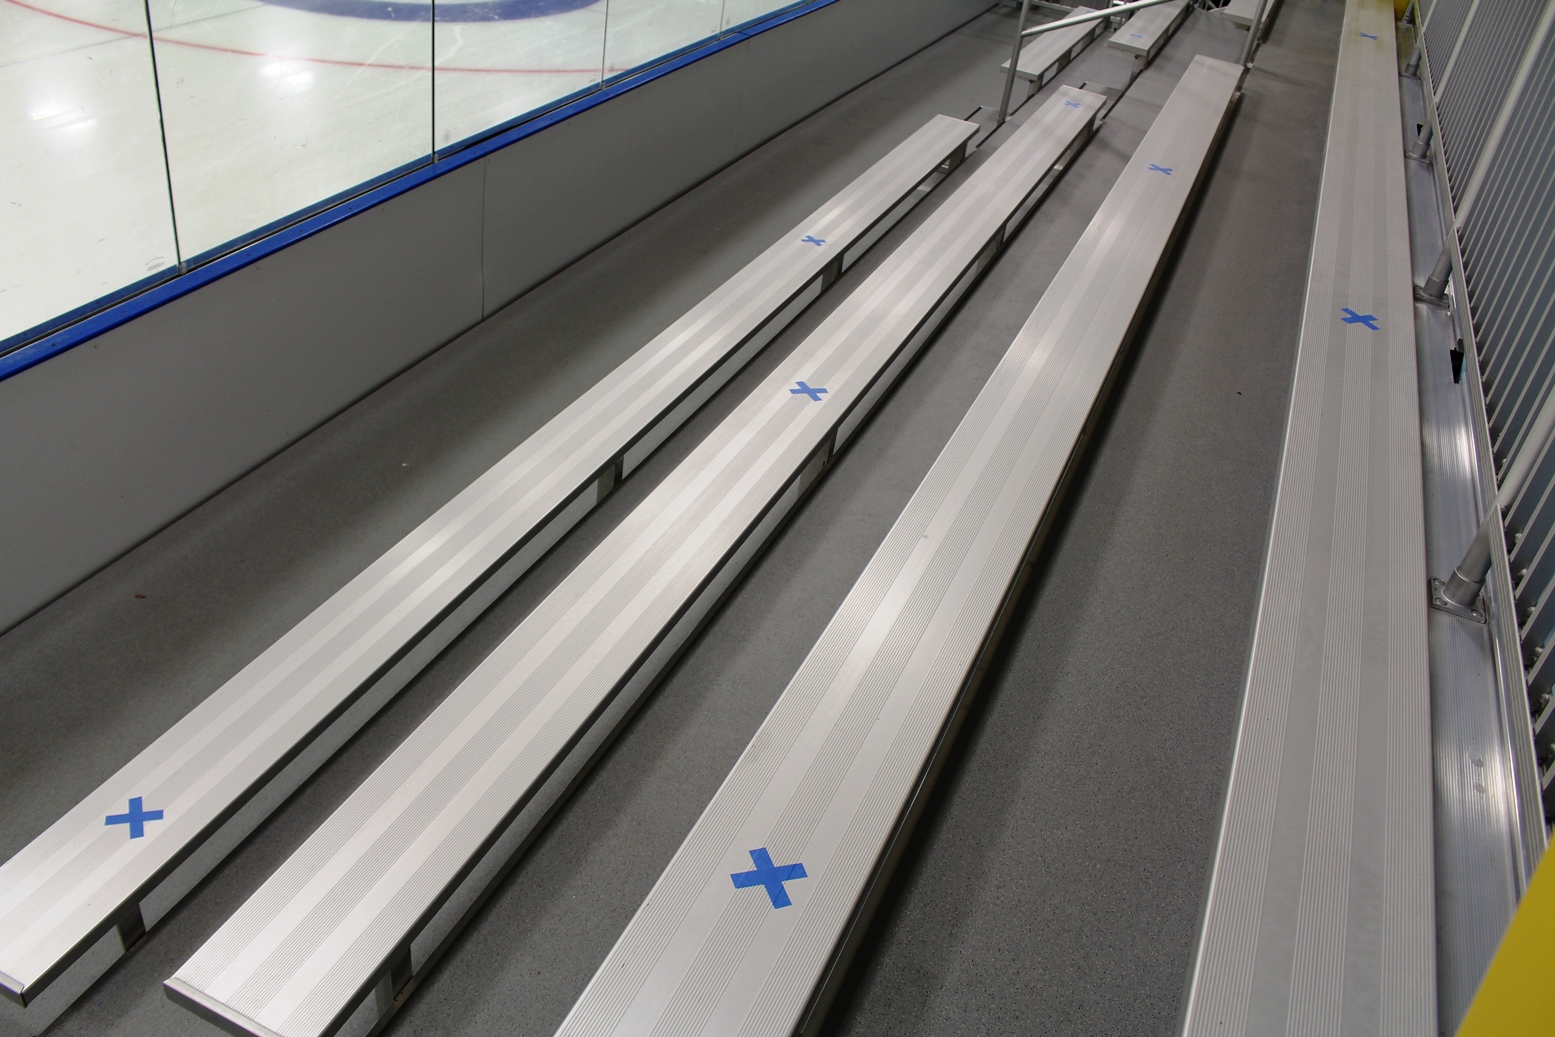 bleachers marked with tape for social distancing